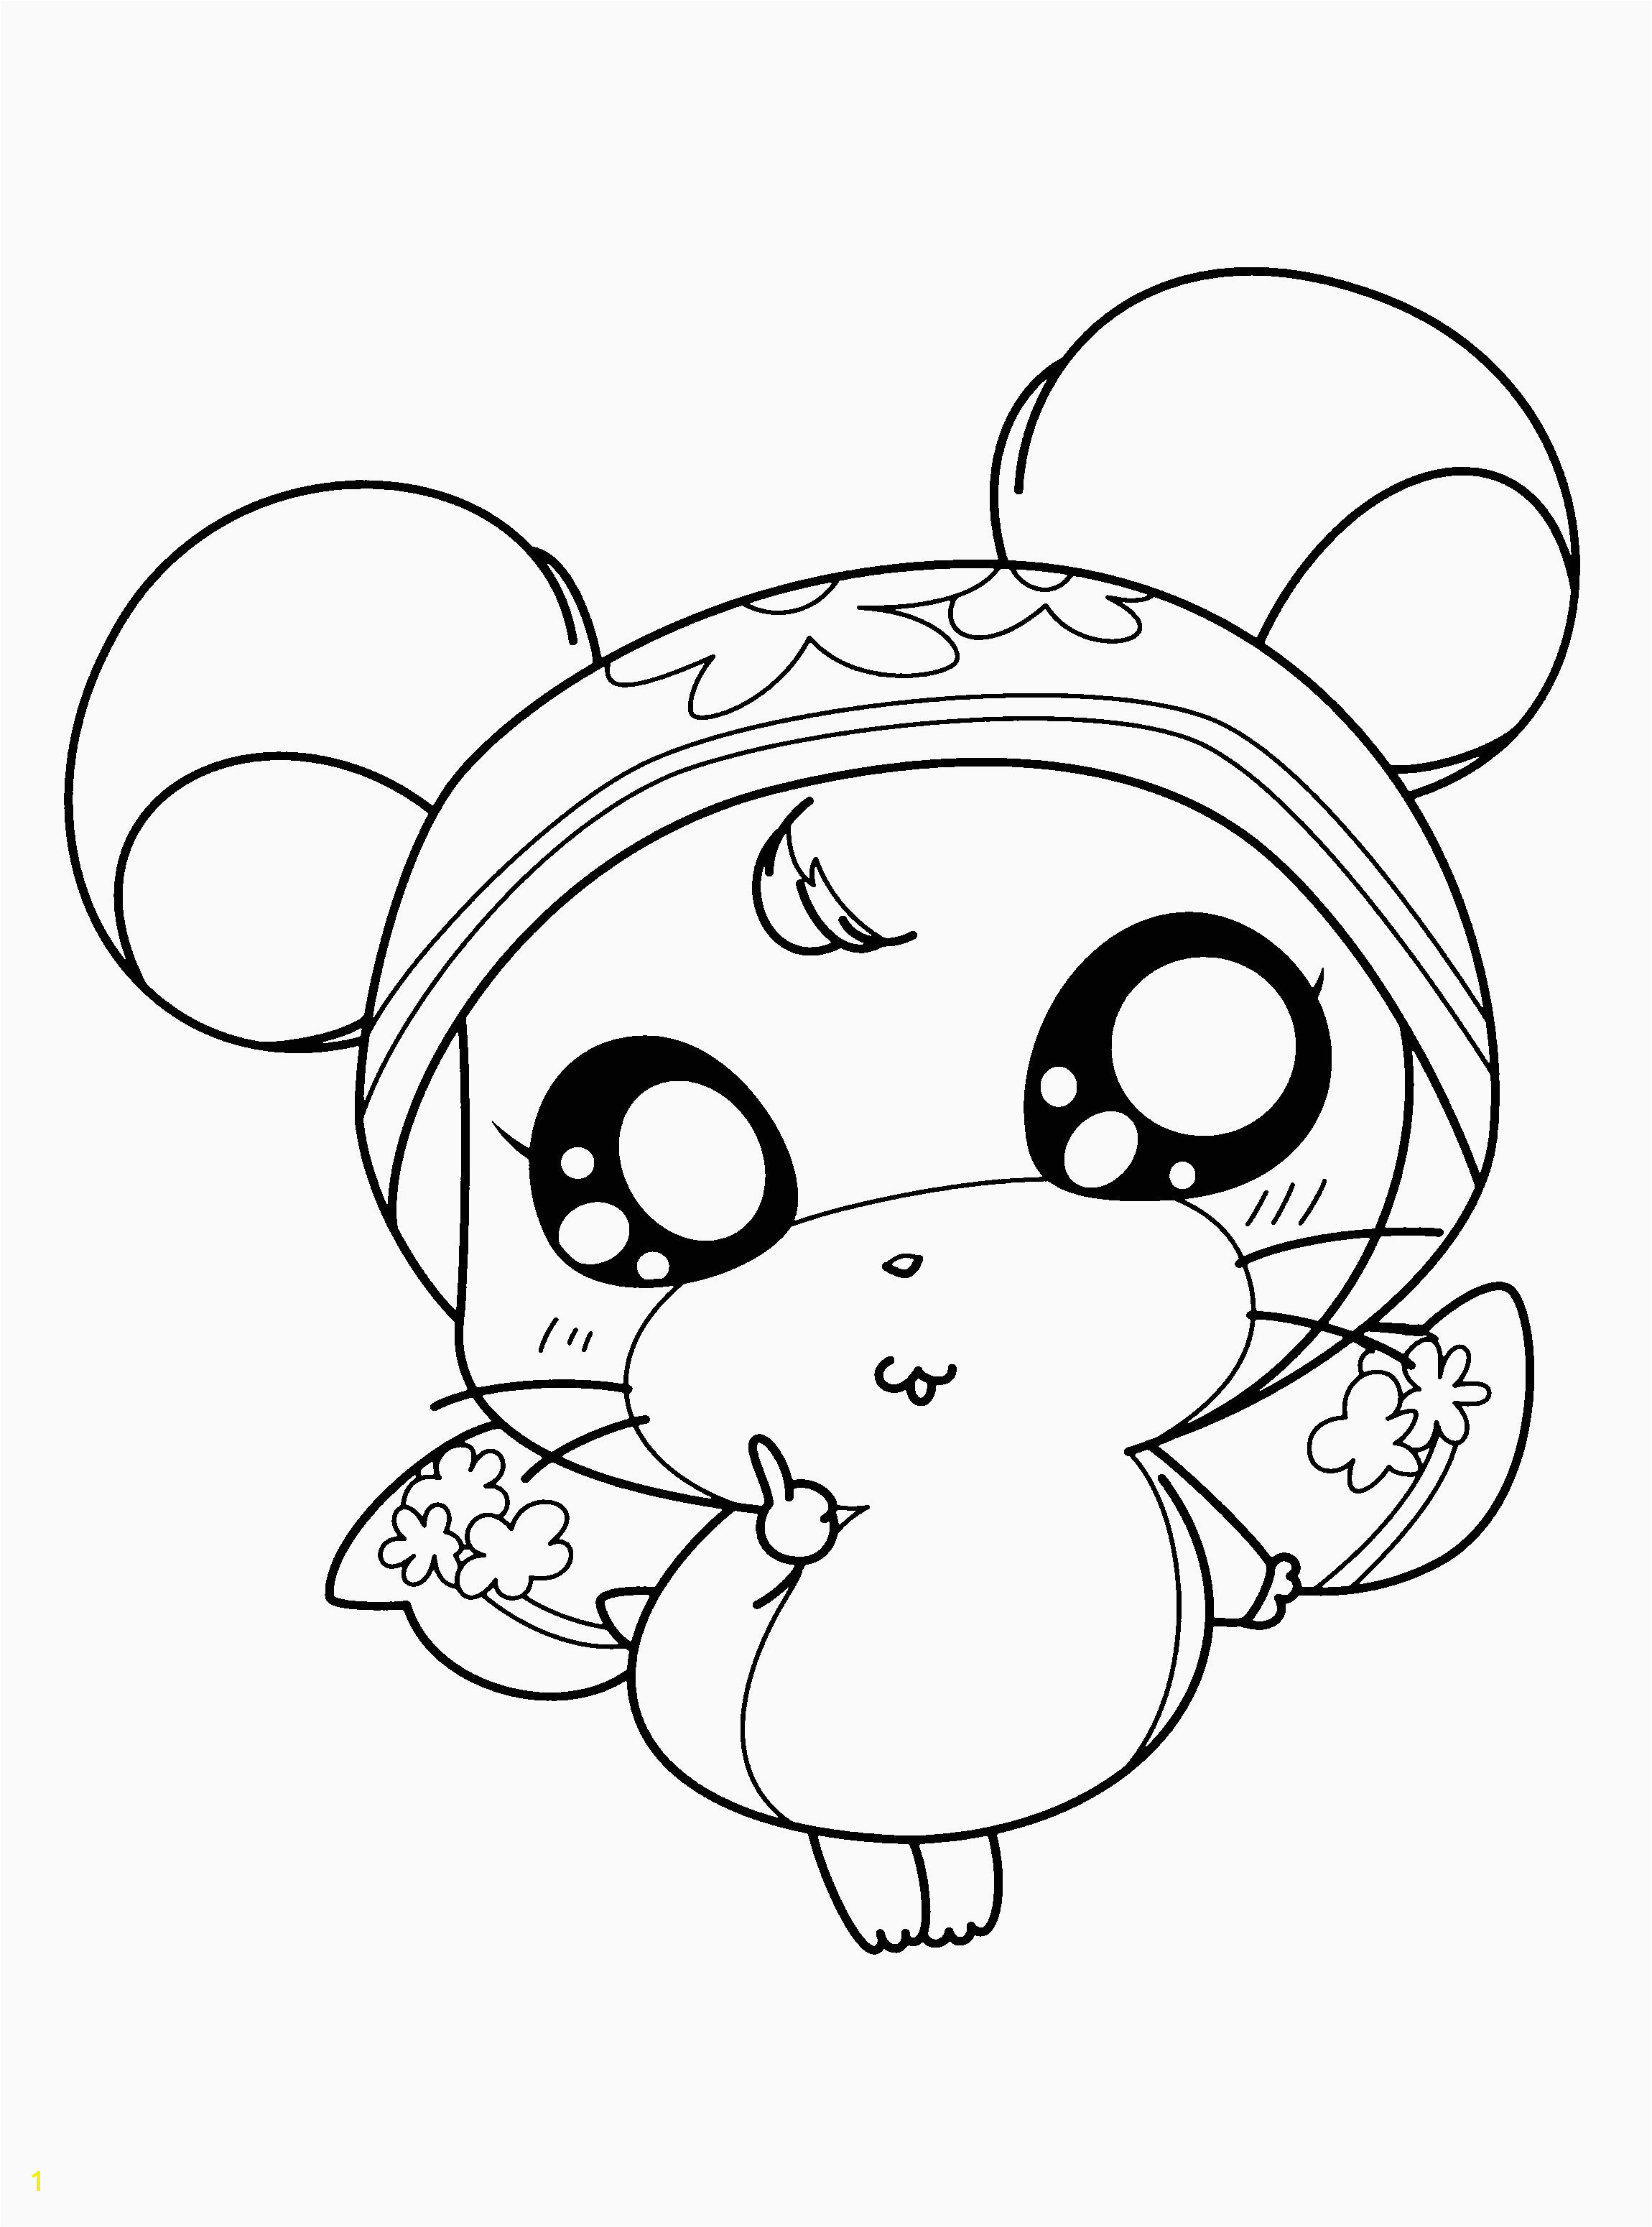 Bratz Ice Skating Coloring Pages 14 New Ice Skating Coloring Pages